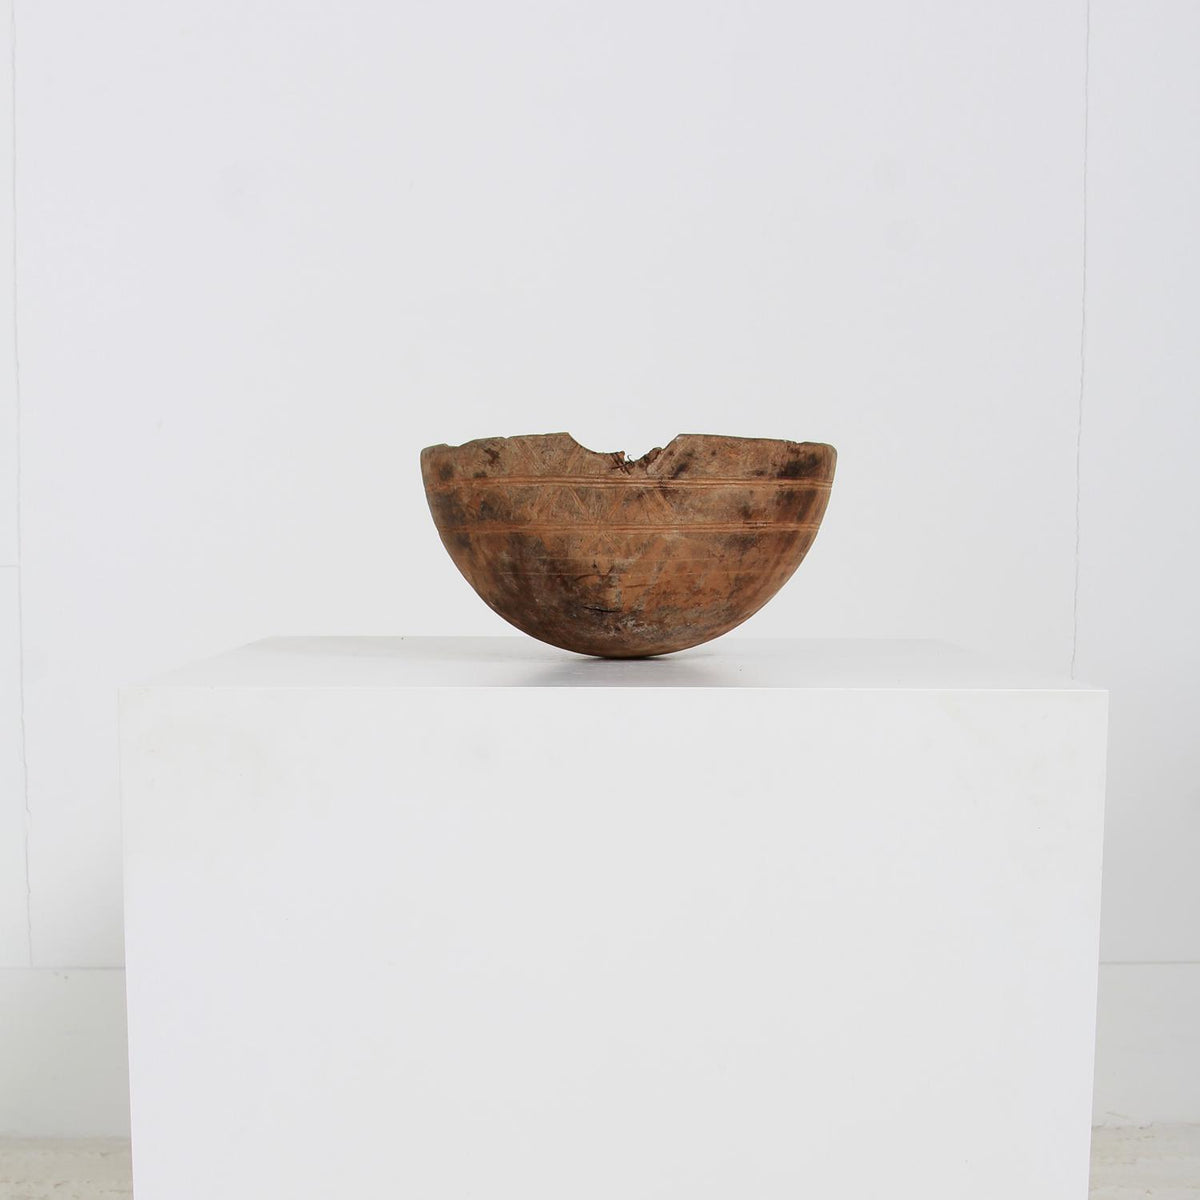 Tribal Wooden Bowl with Carved Design